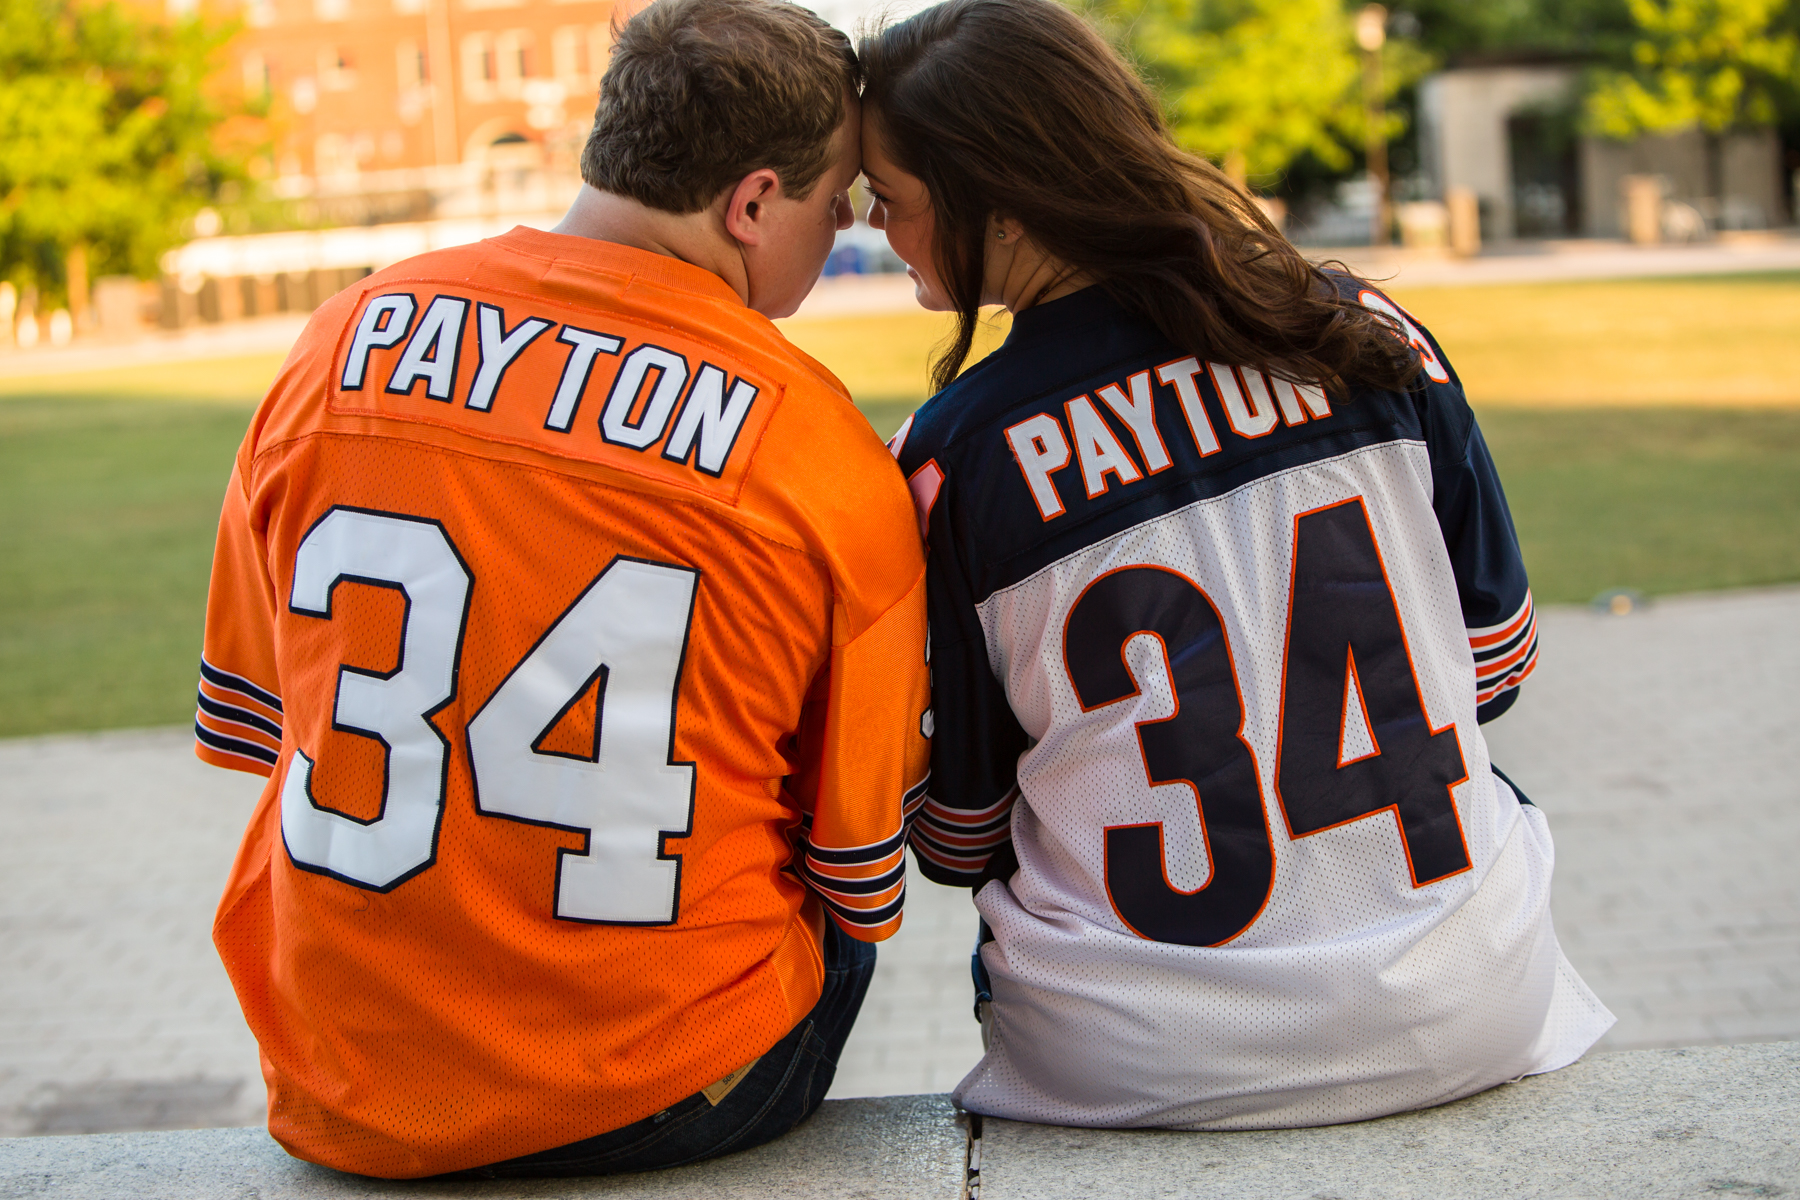 What a great idea to use his favorite sports jerseys for their engagement session.